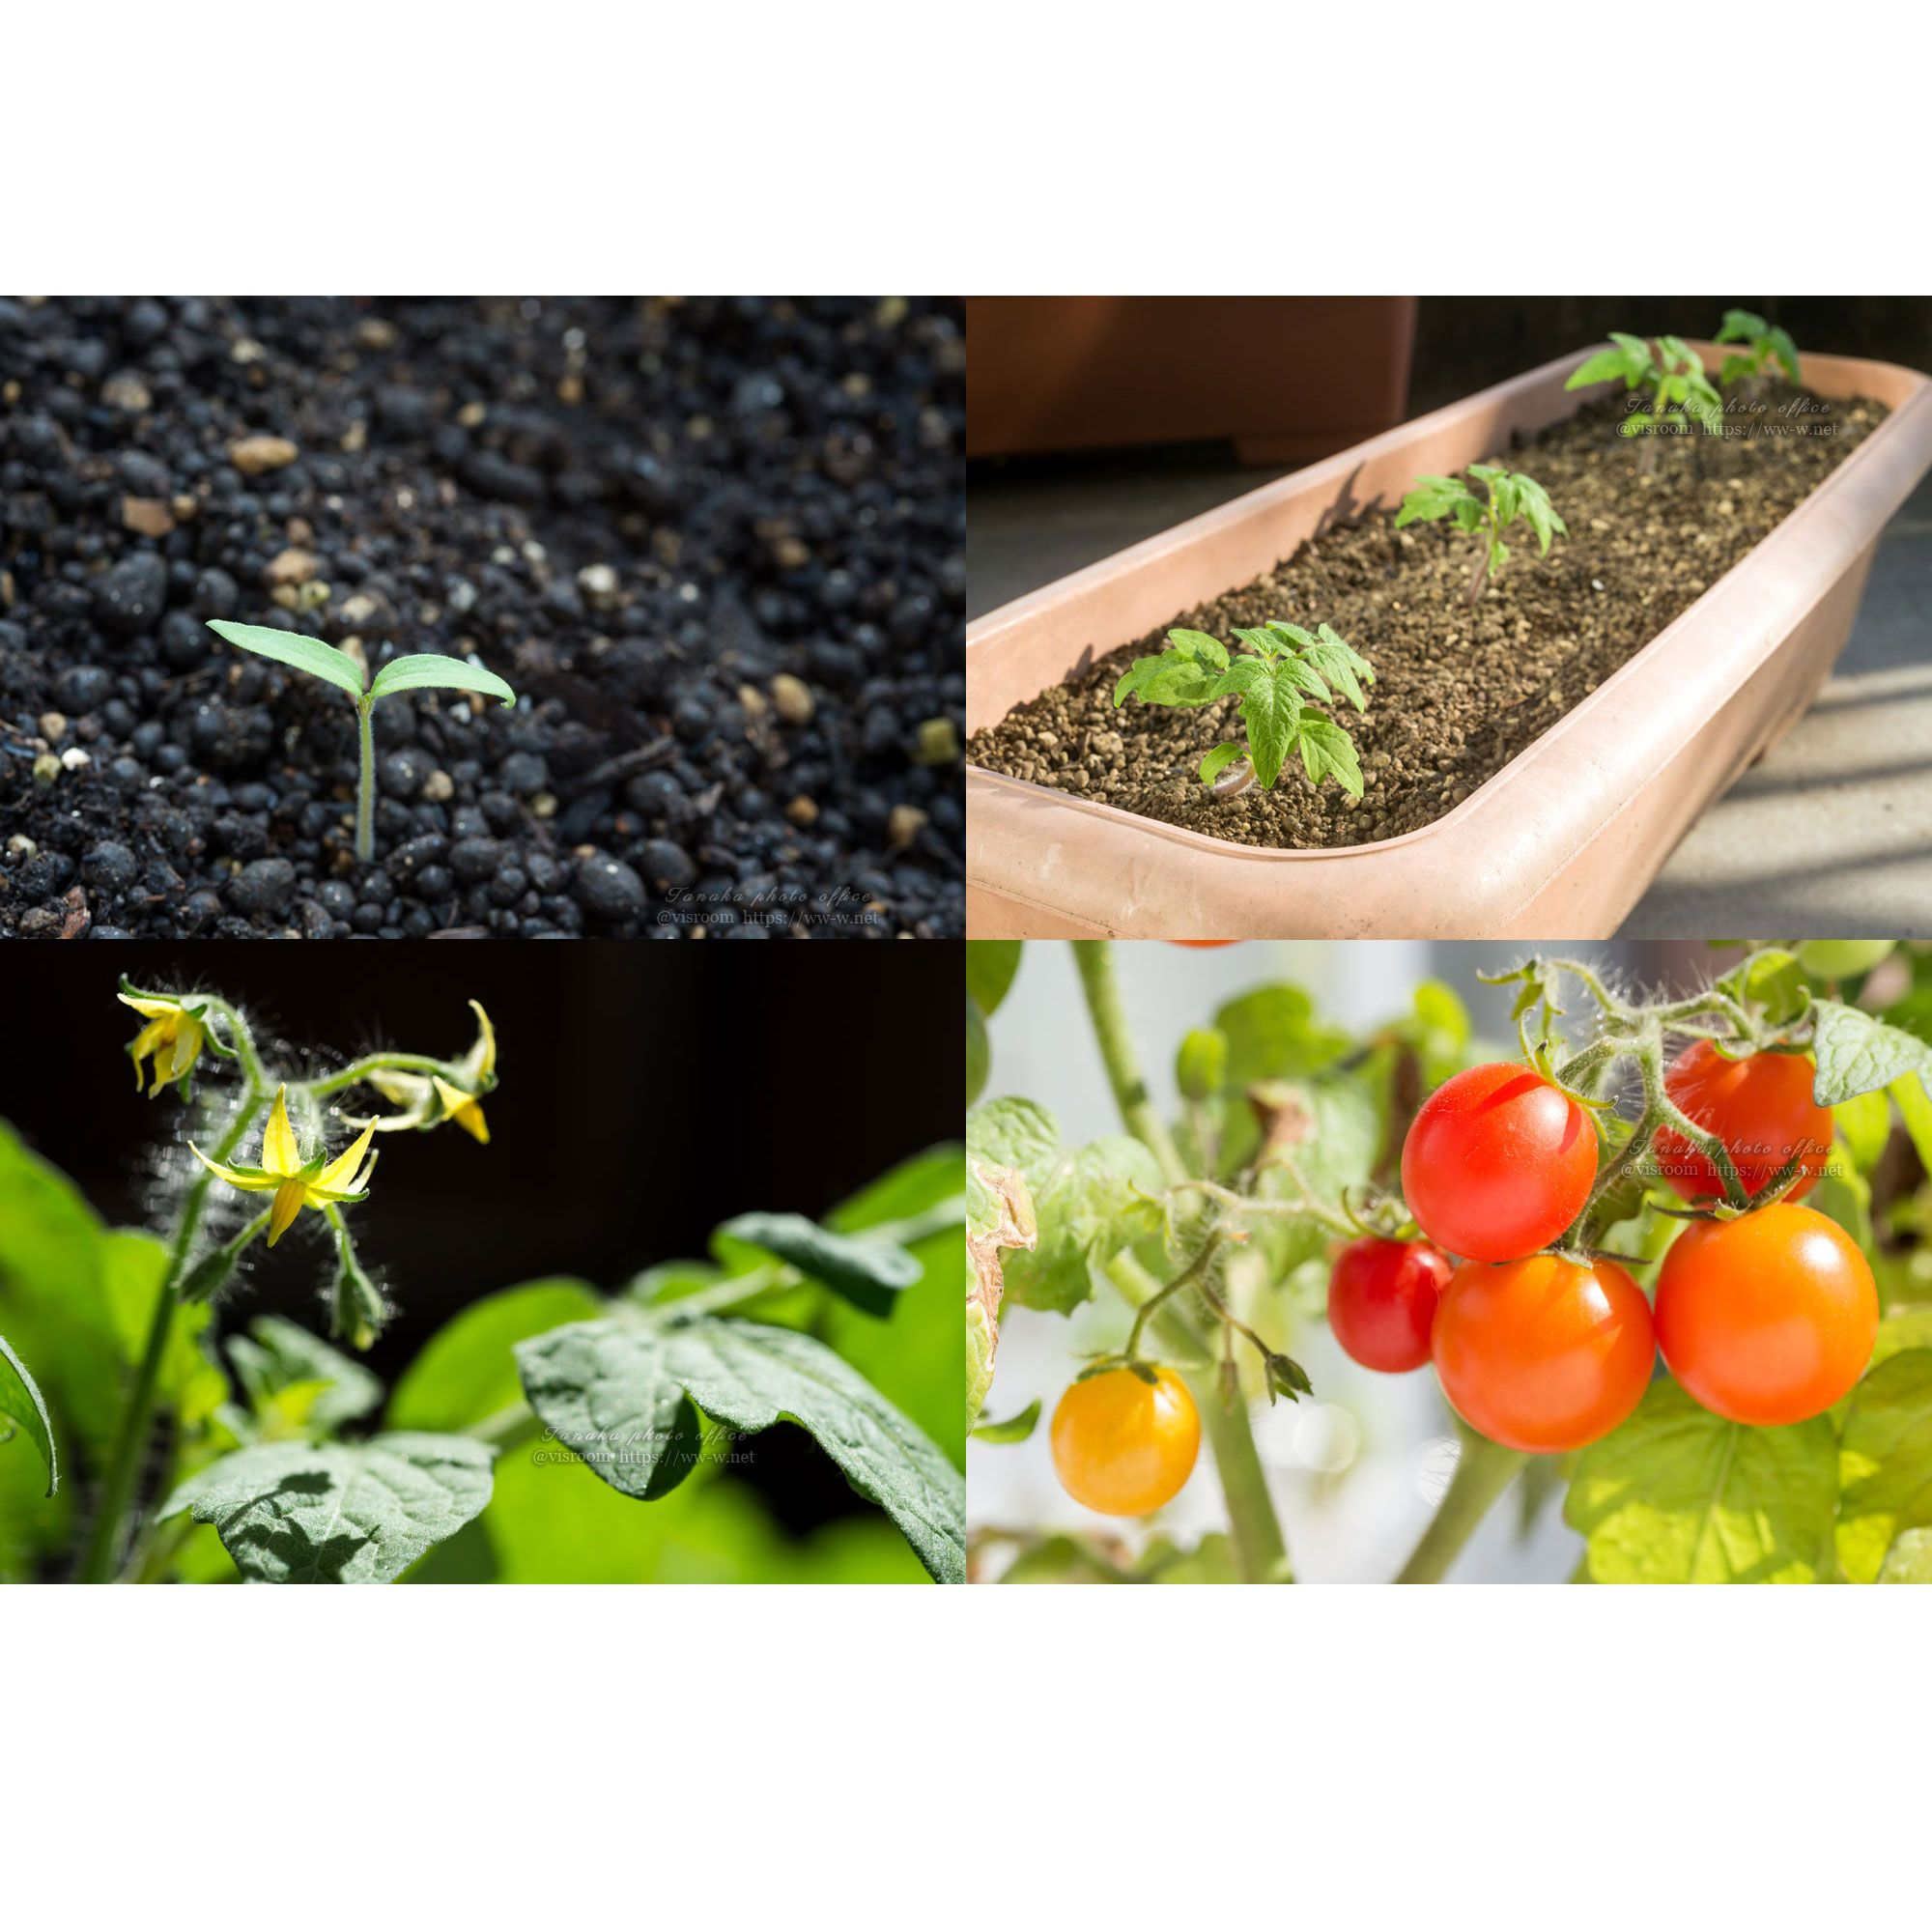 Growth Small Tomatoes That Planter Cultivation ミニトマトの